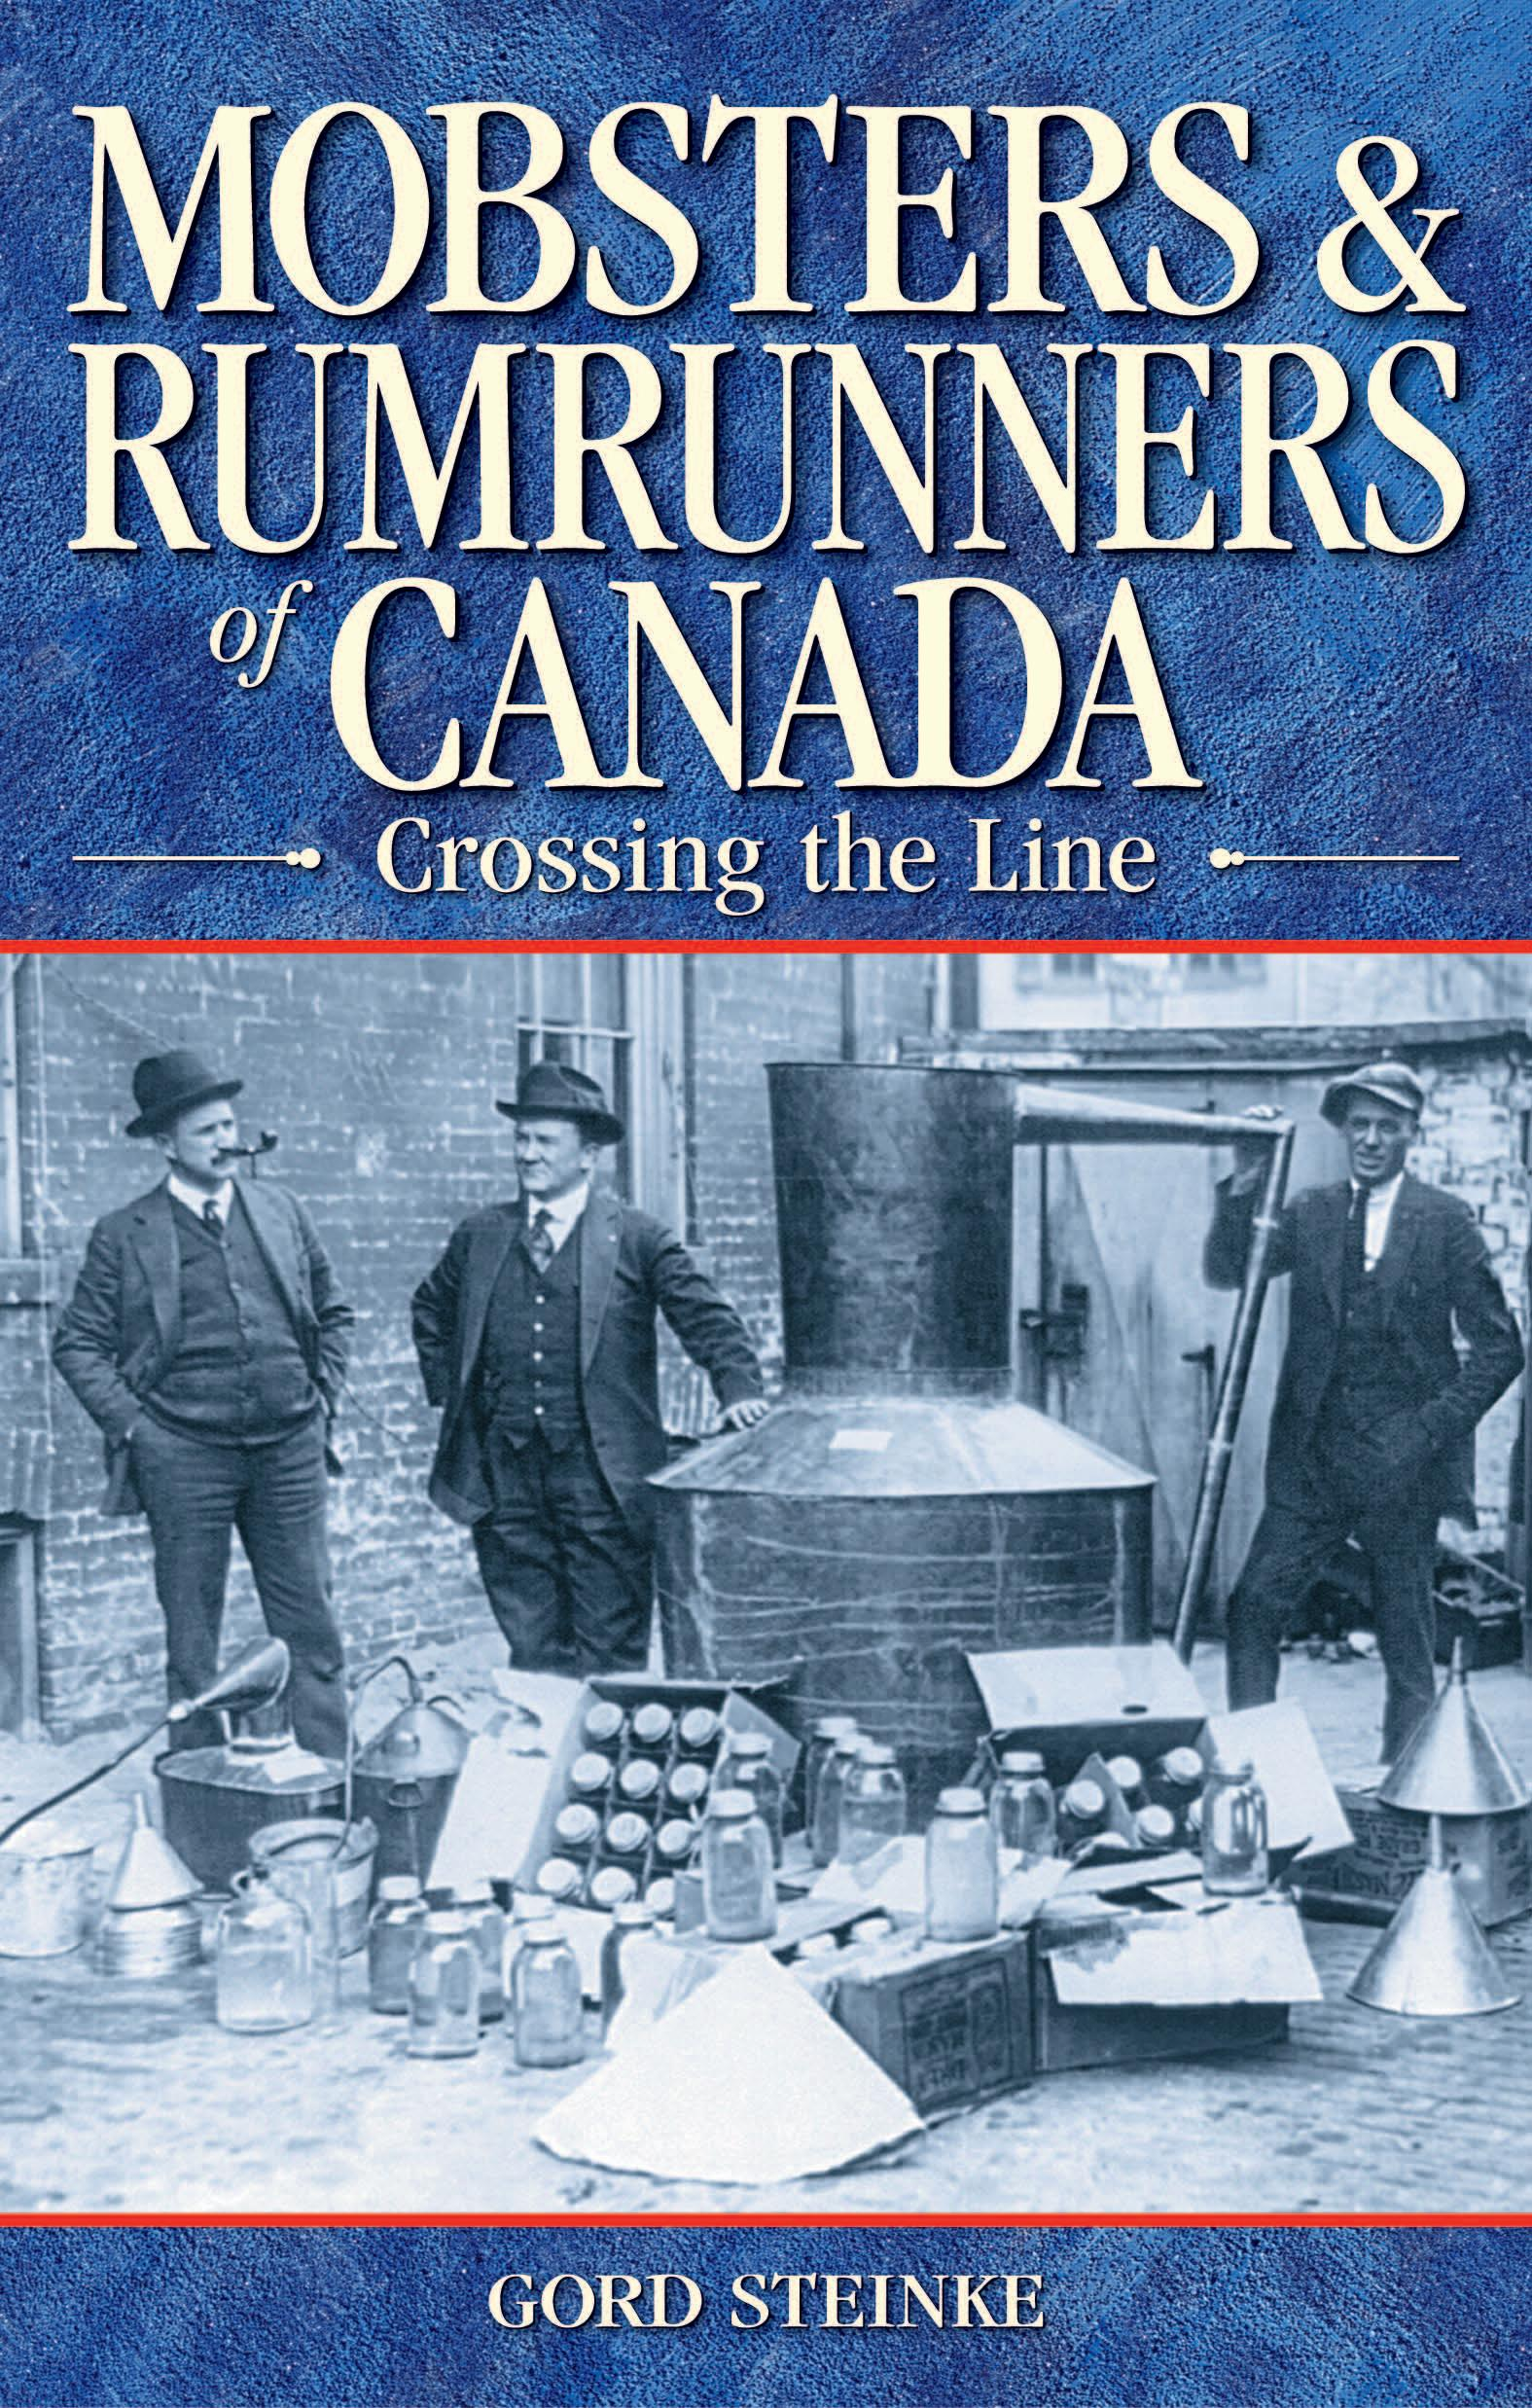 Mobsters & Rumrunners of Canada: Crossing the Line